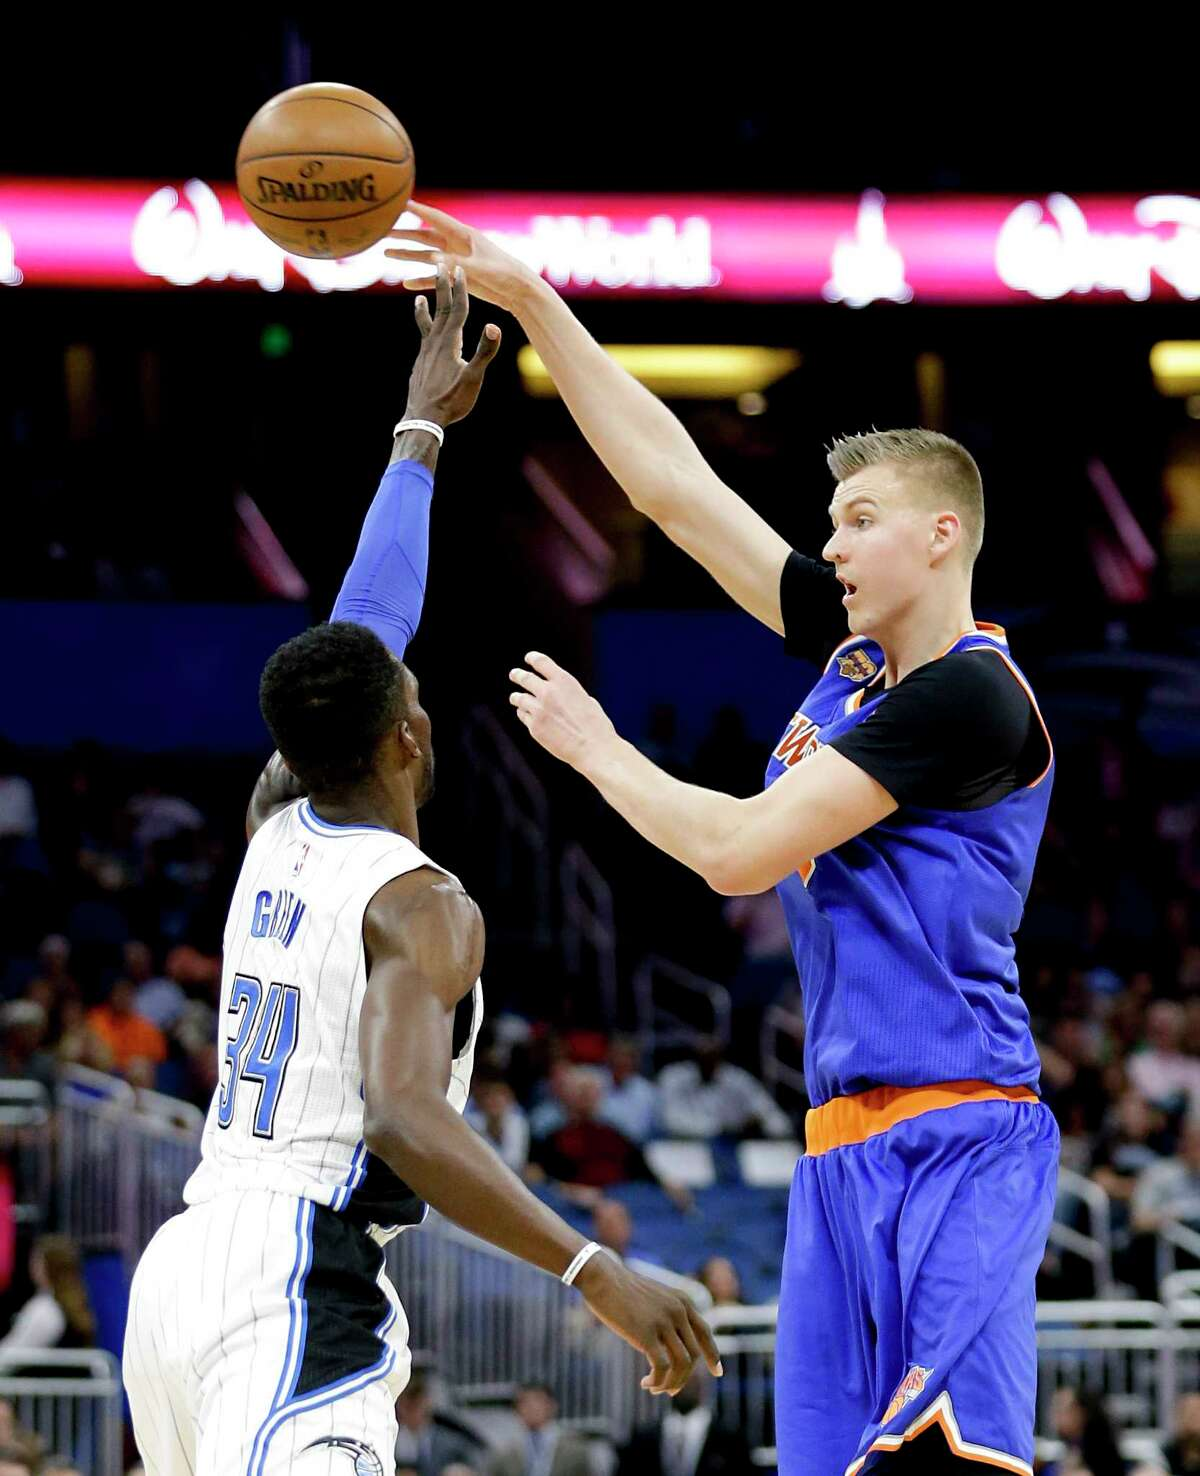 New York Knicks' Kristaps Porzingis, right, passes the ball over Orlando Magic's Jeff Green (34) during the first half of an NBA basketball game, Wednesday, March 1, 2017, in Orlando, Fla. (AP Photo/John Raoux) ORG XMIT: DOA109